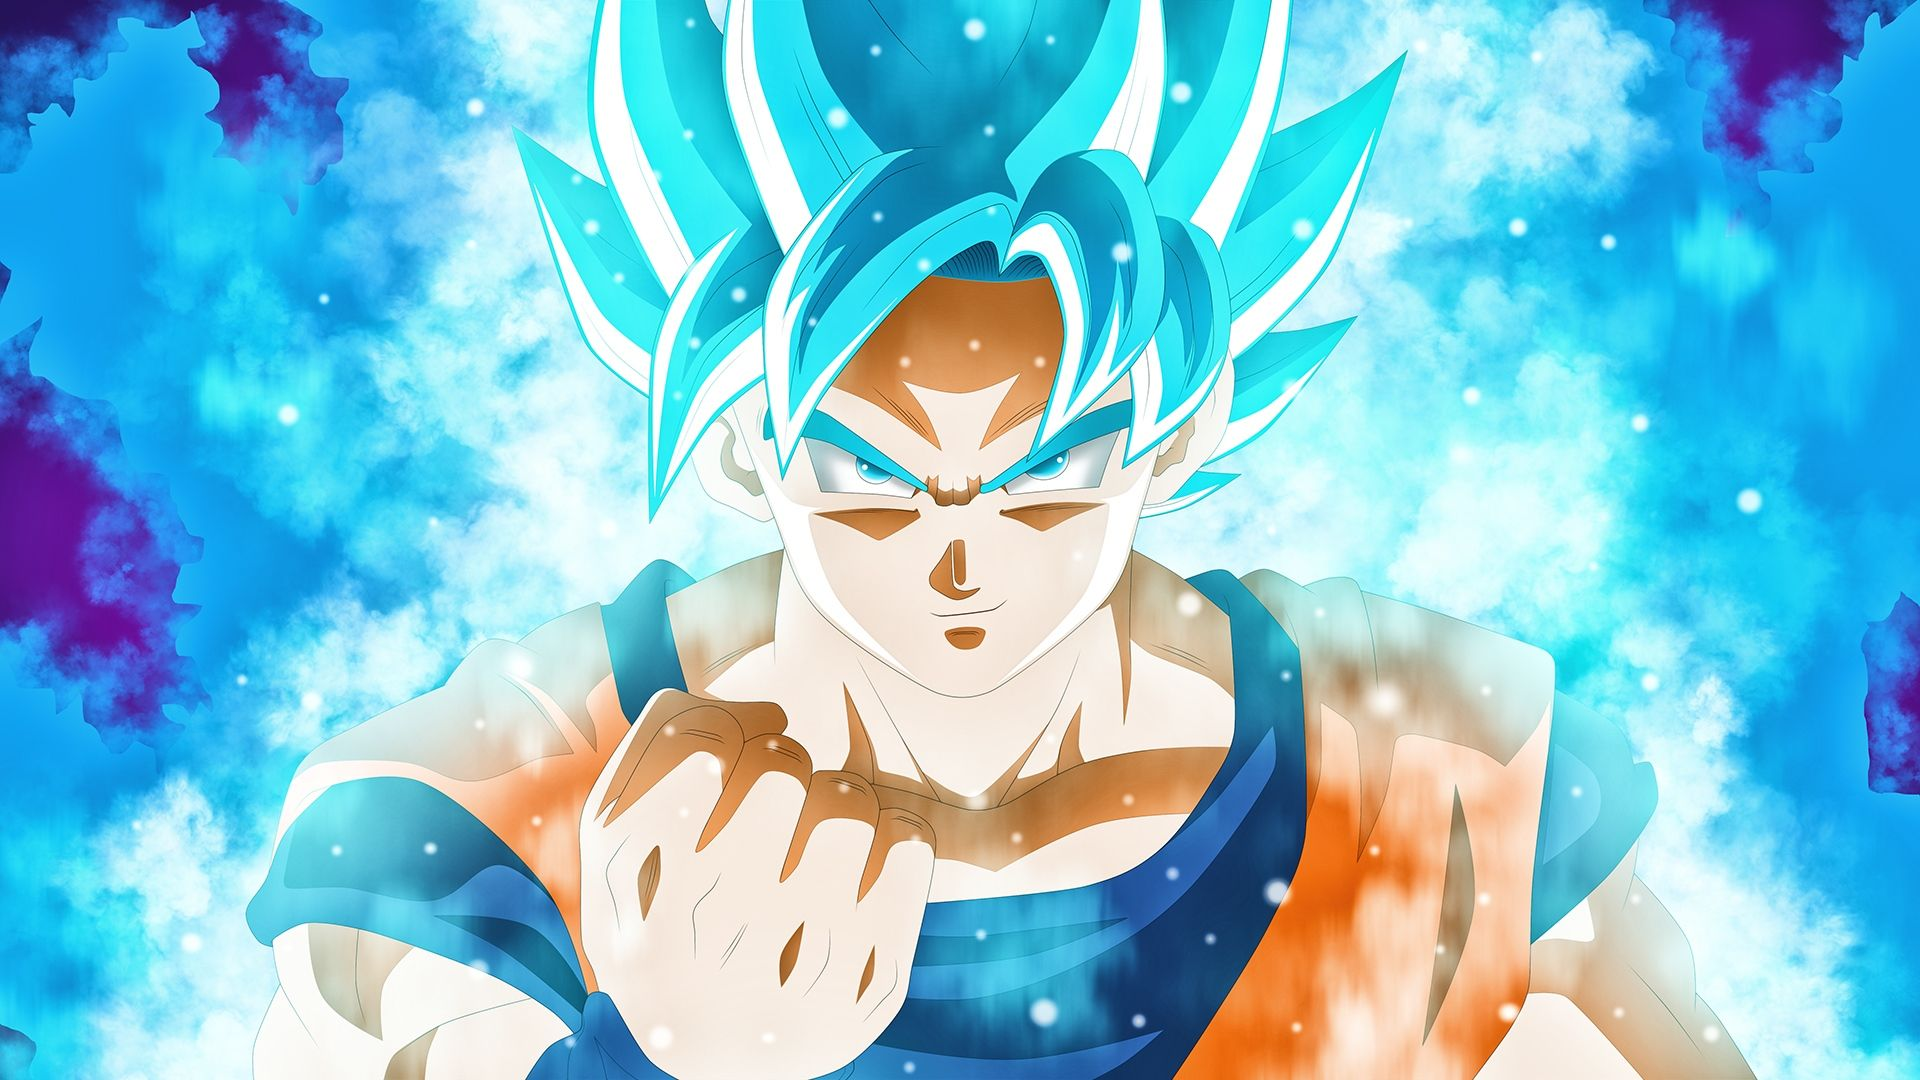 Goku, Super Saiyan Blue, Dragon Ball Super Anime, Anime